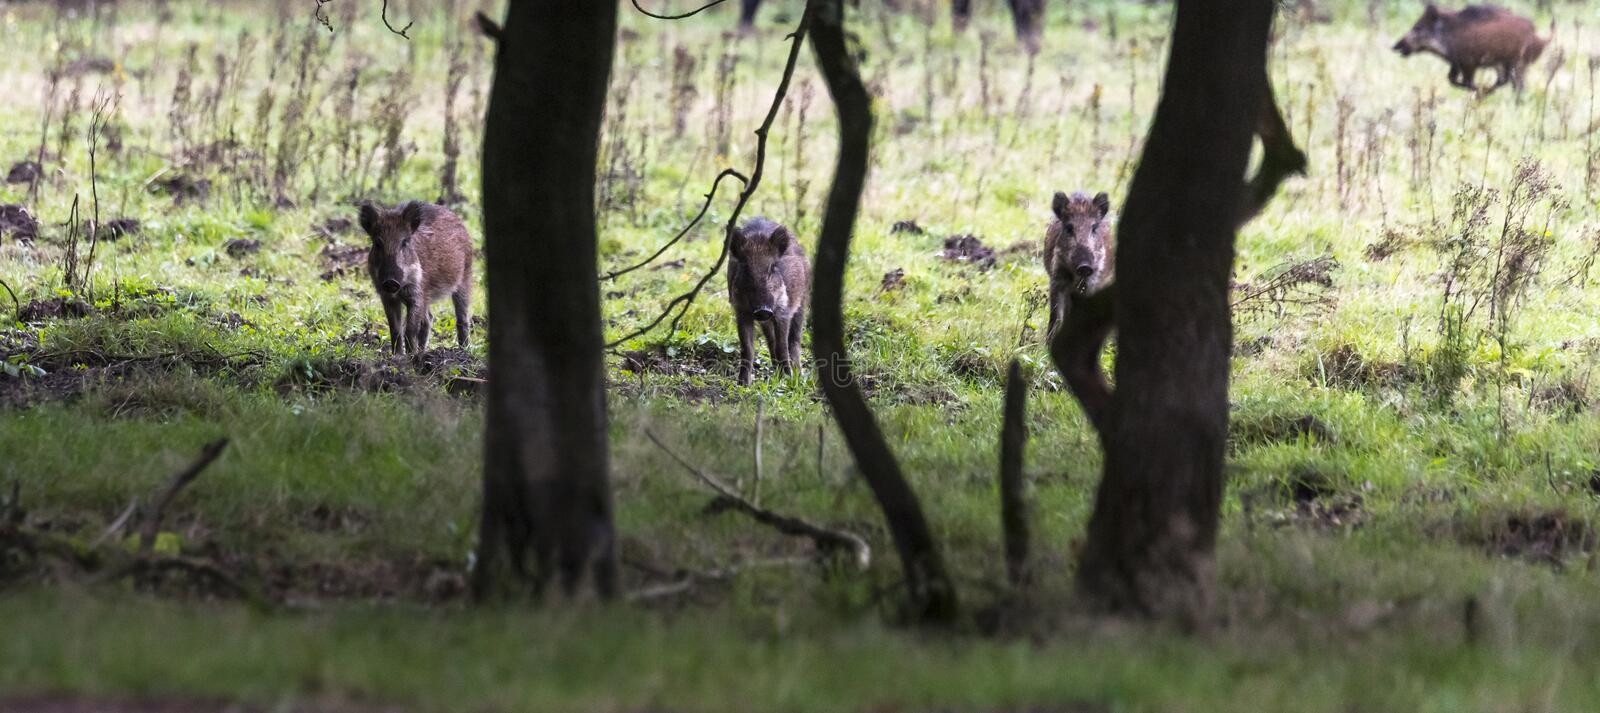 Three wildboar animal in the netherlands in the forest royalty free stock photos